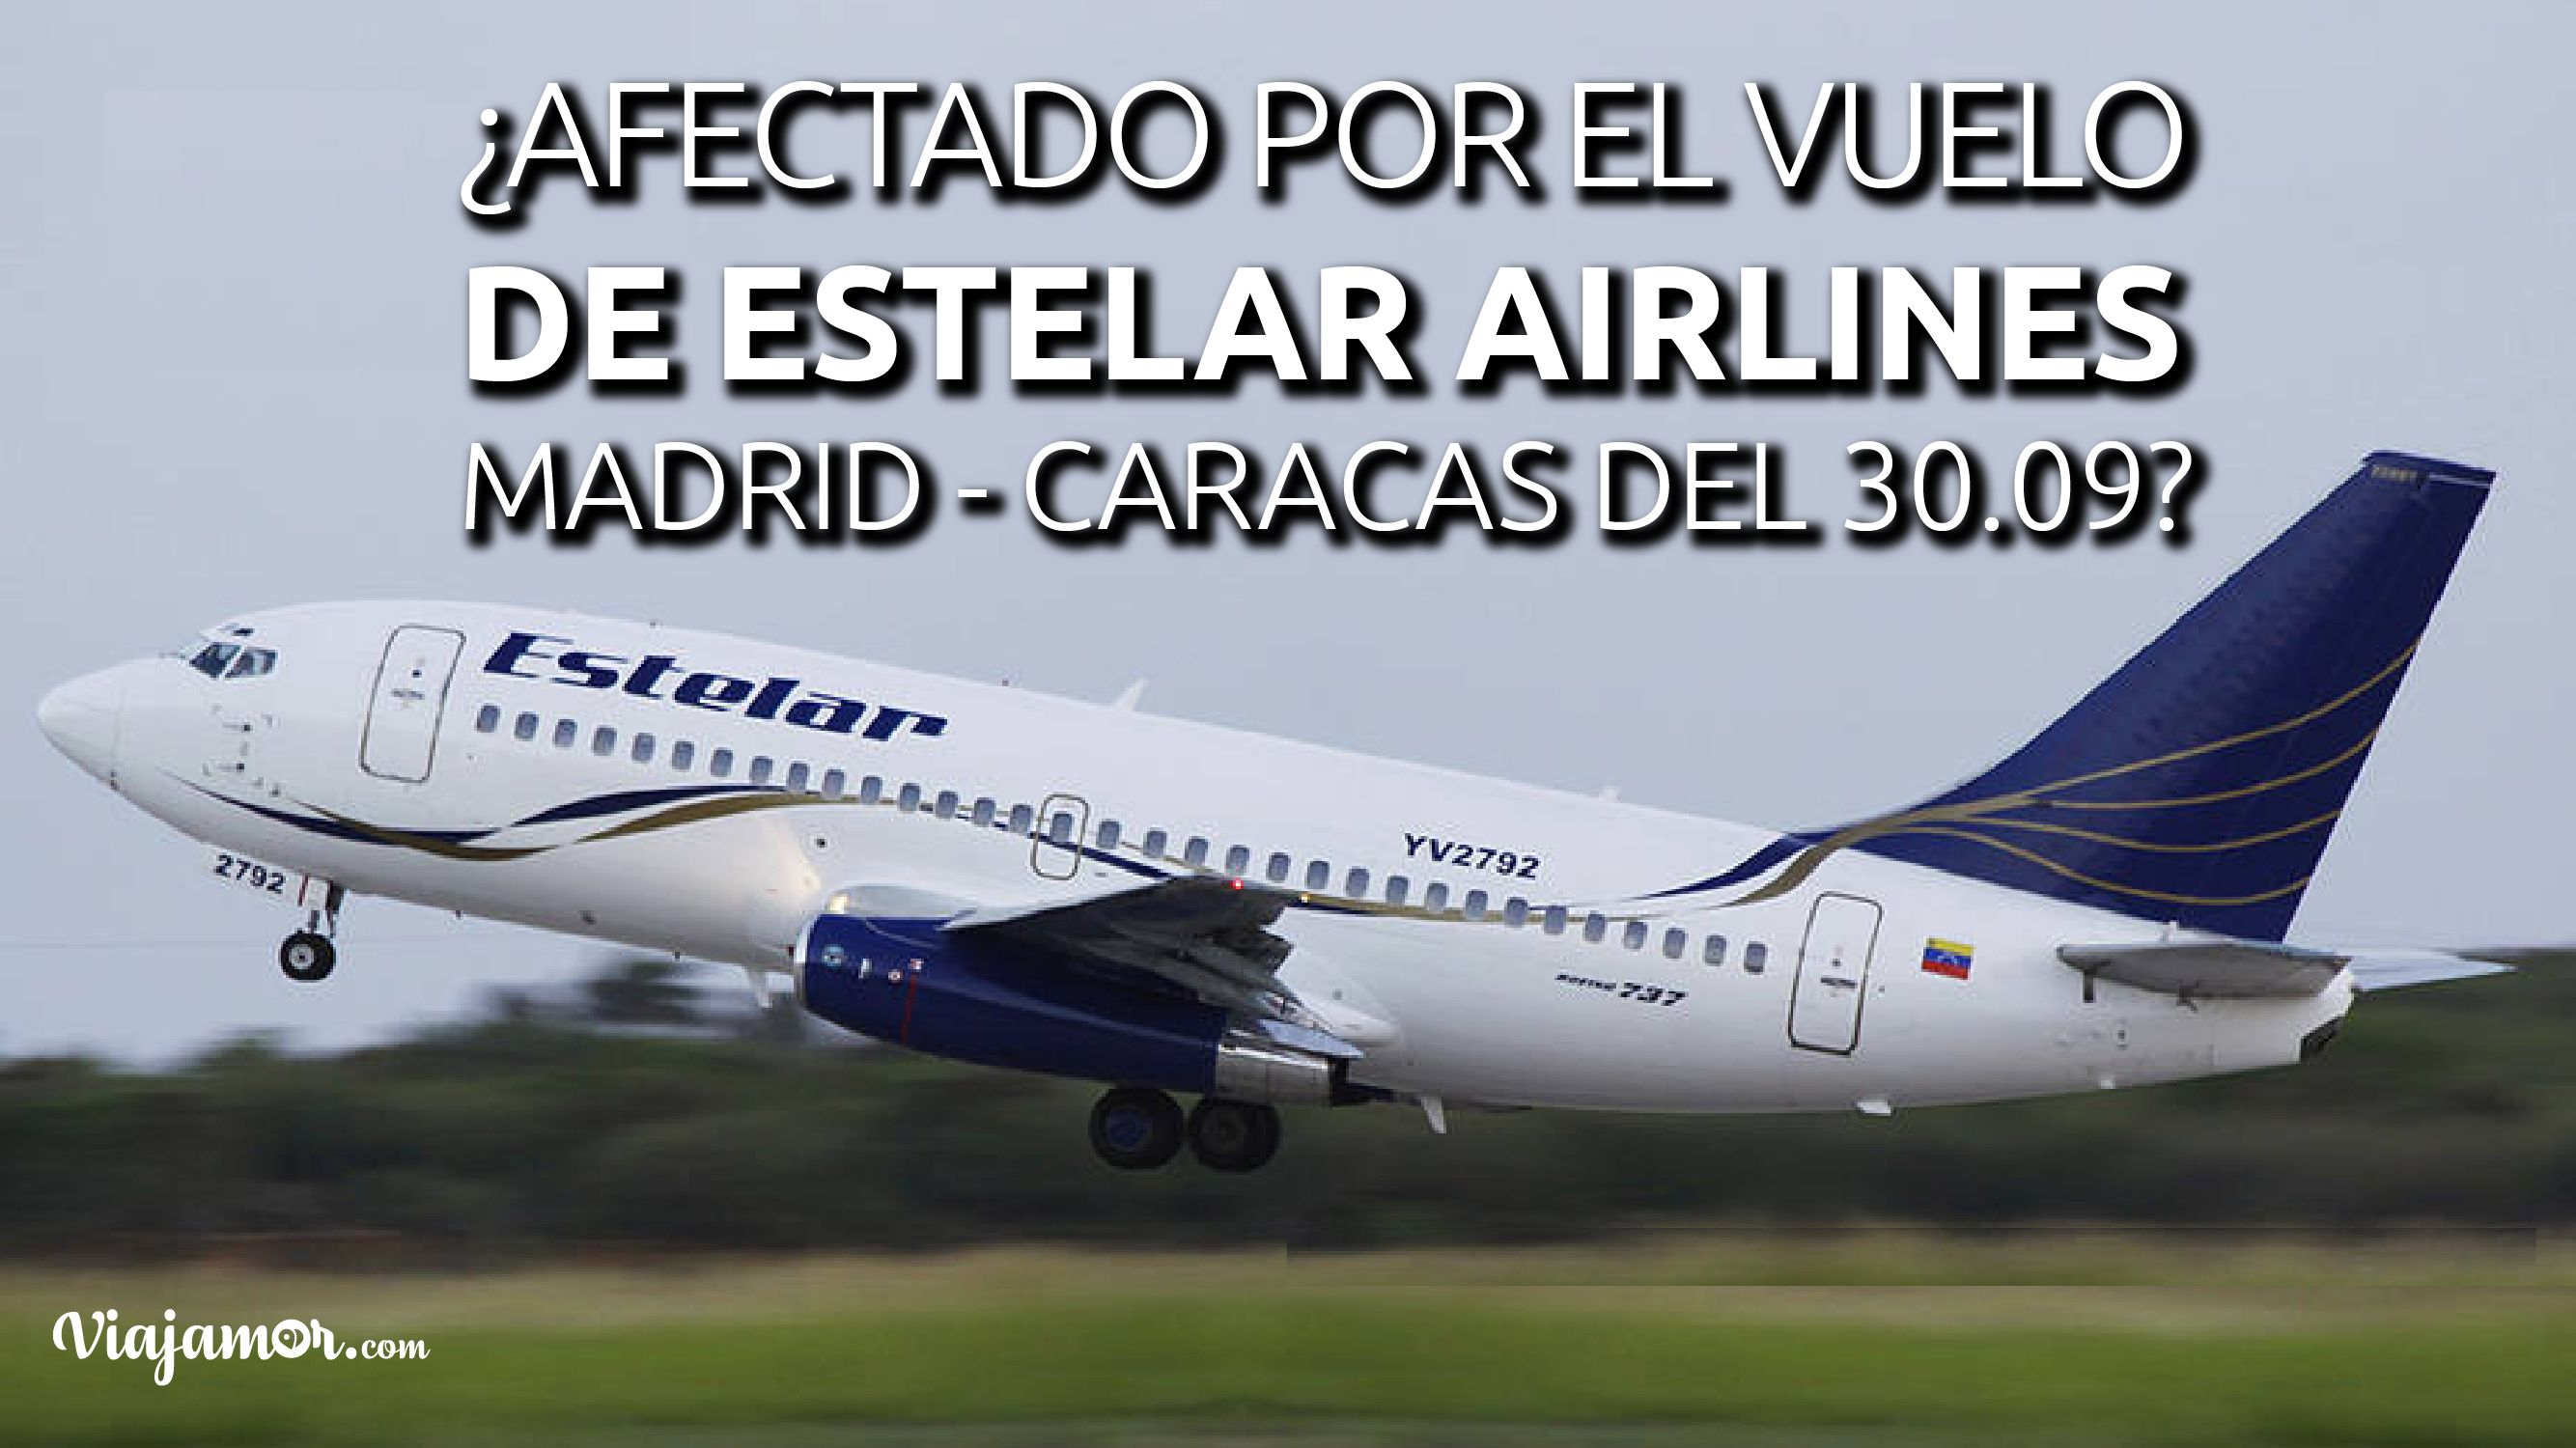 Vuelo estelar madrid caracas